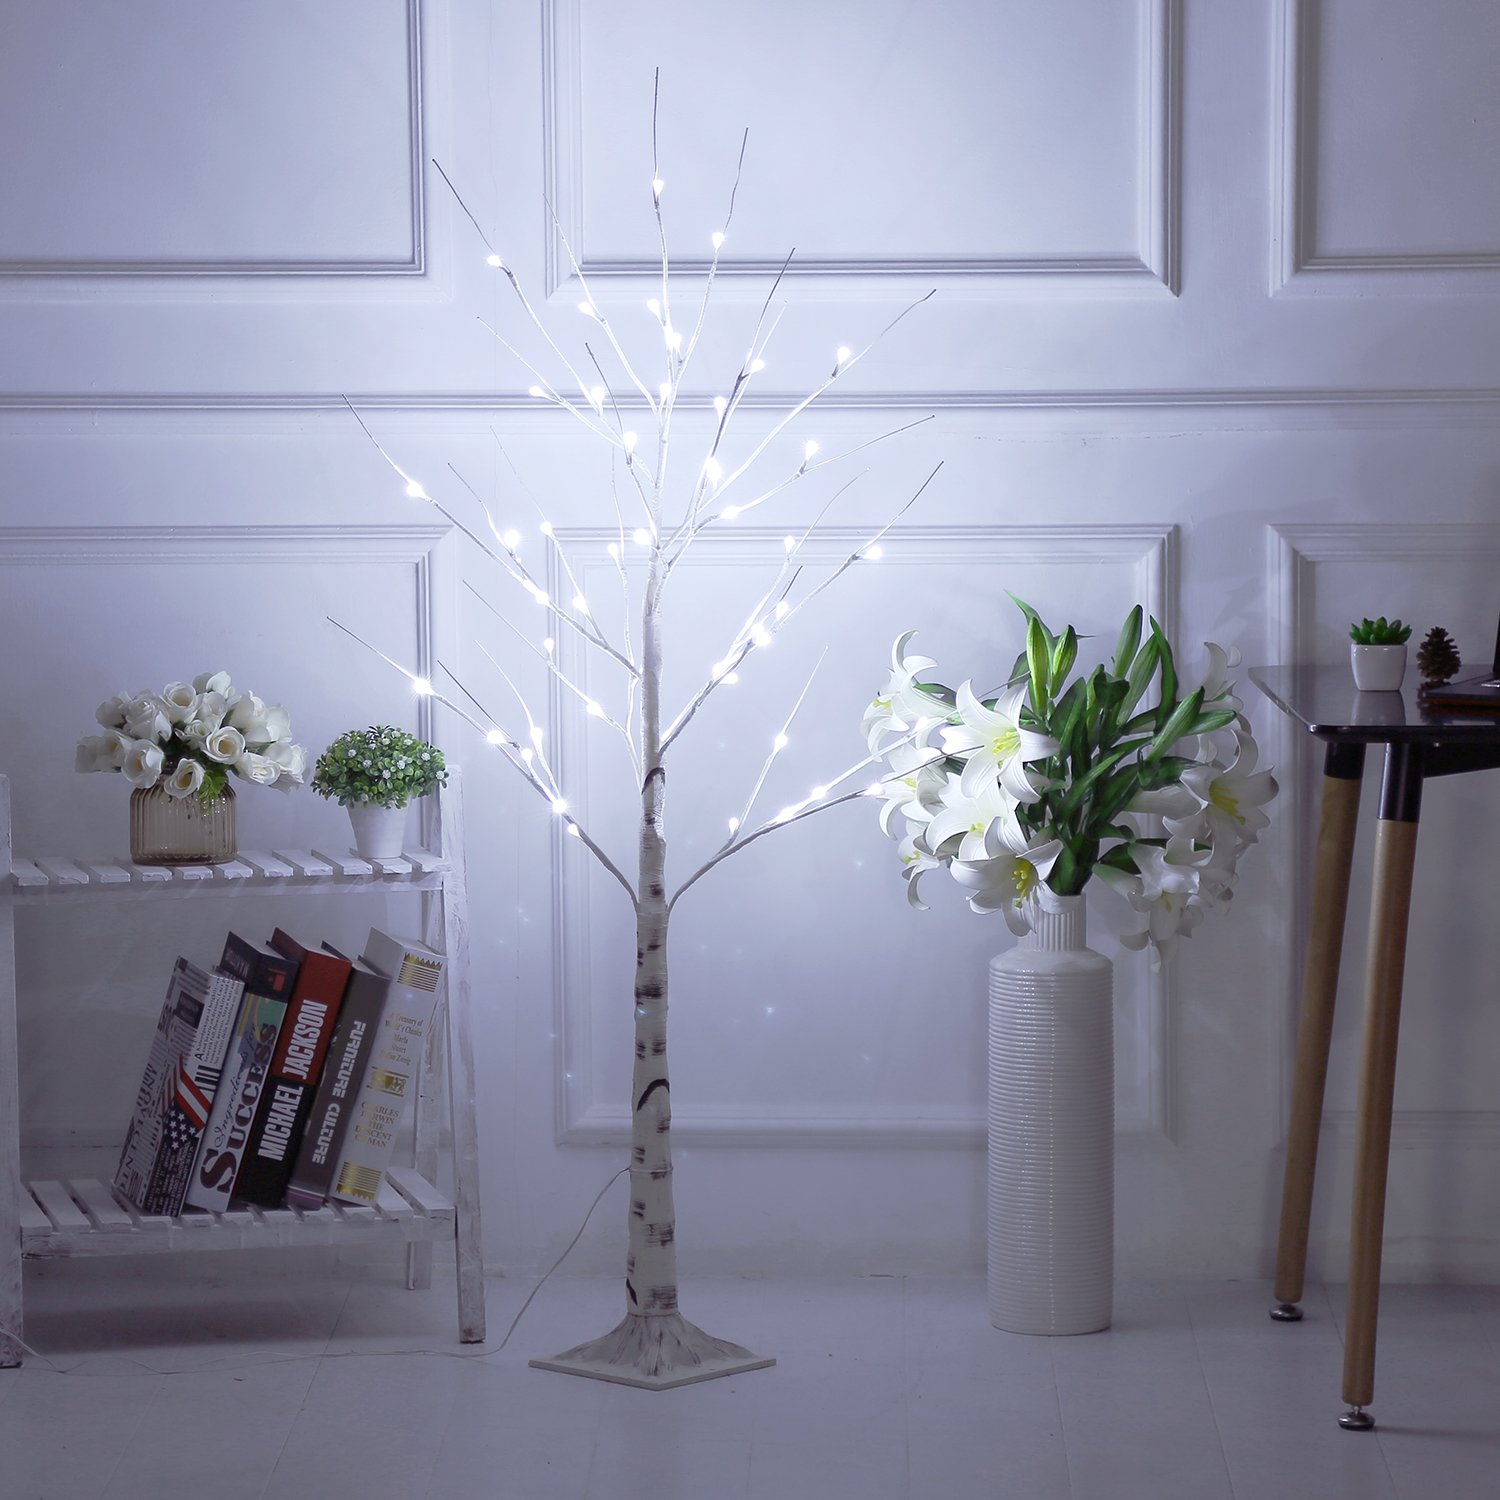 Bolylight LED Birch Tree 4ft 48L LED Christmas Decorations Lighted Tree Decor for Bedroom/Party/Wedding/Office/Home Outdoor and Indoor Use White